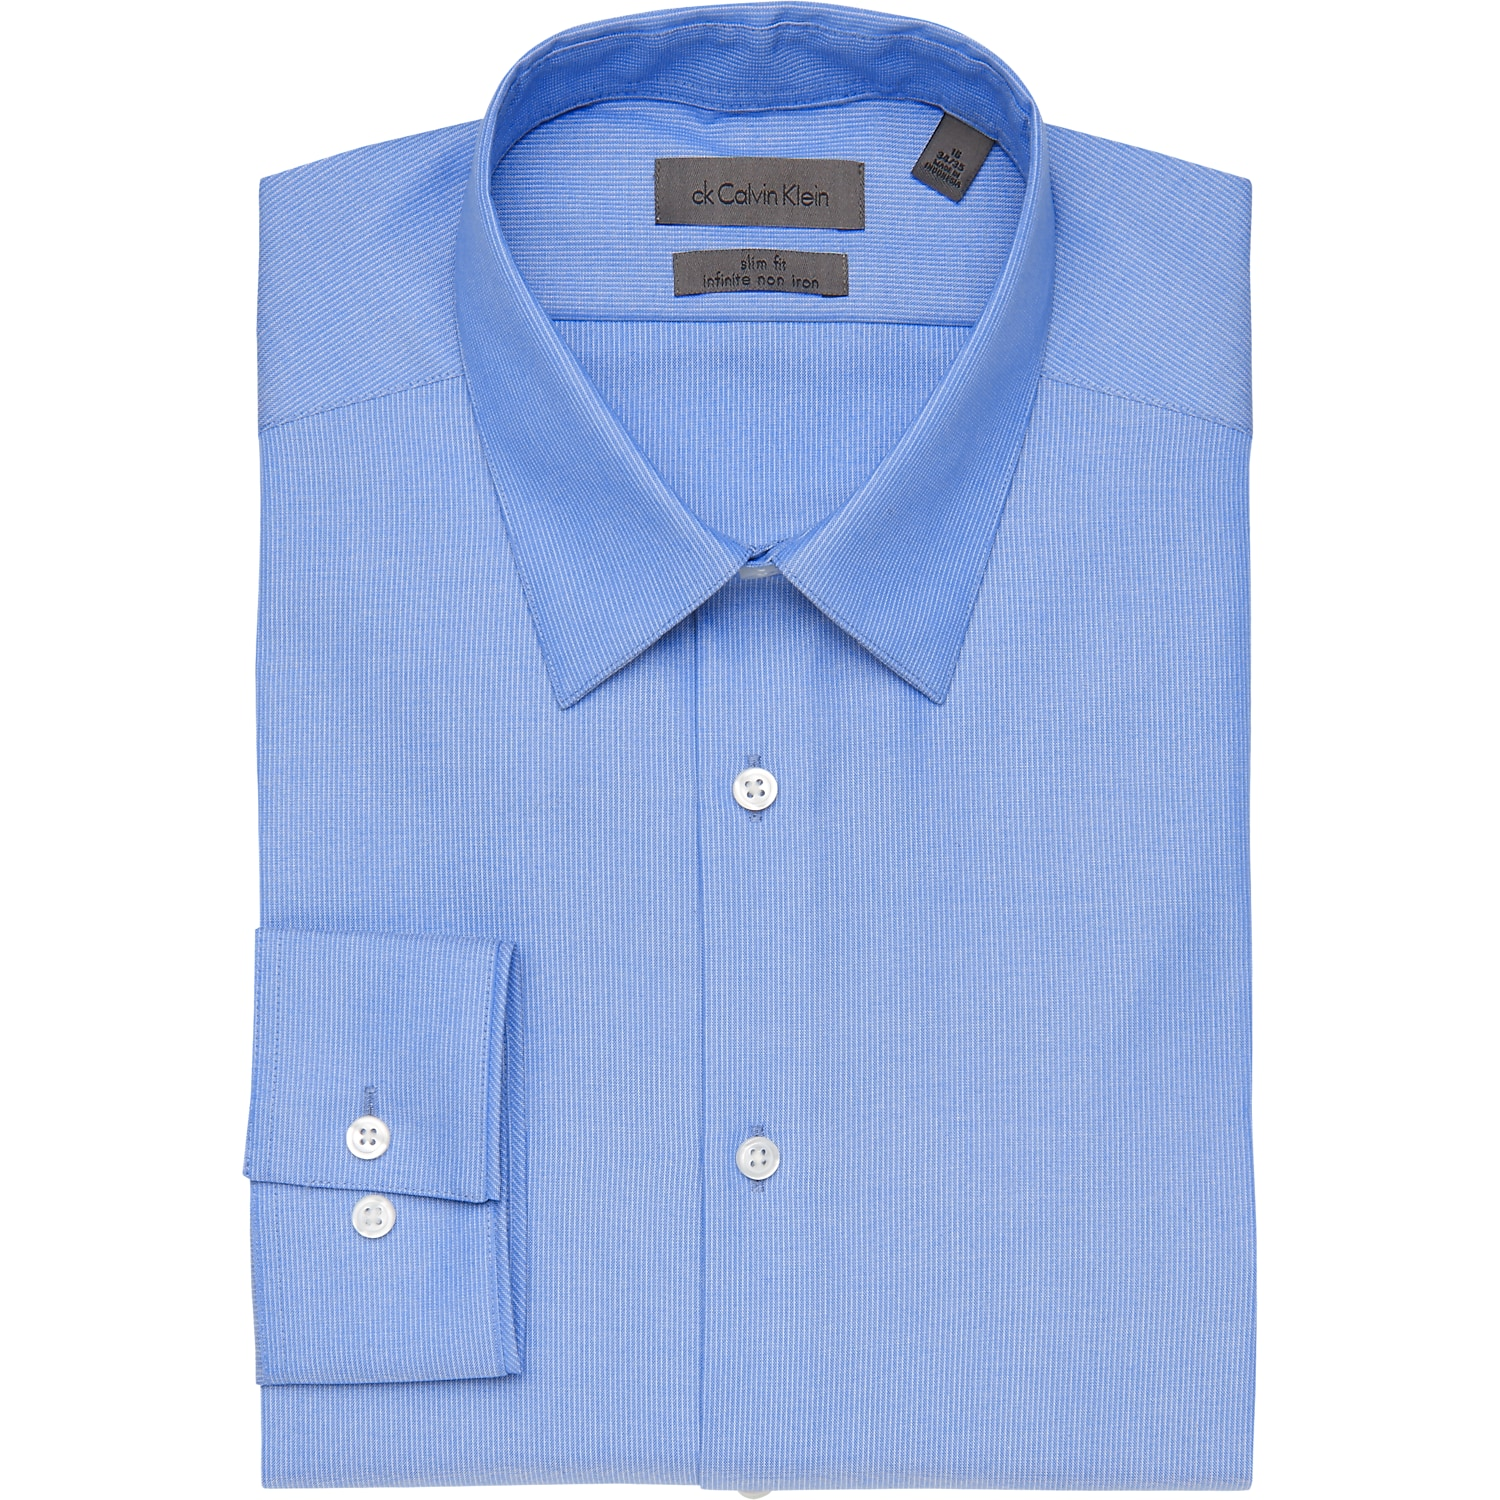 Dress Shirts - Shop Hundreds of Designer Dress Shirts | Men's ...